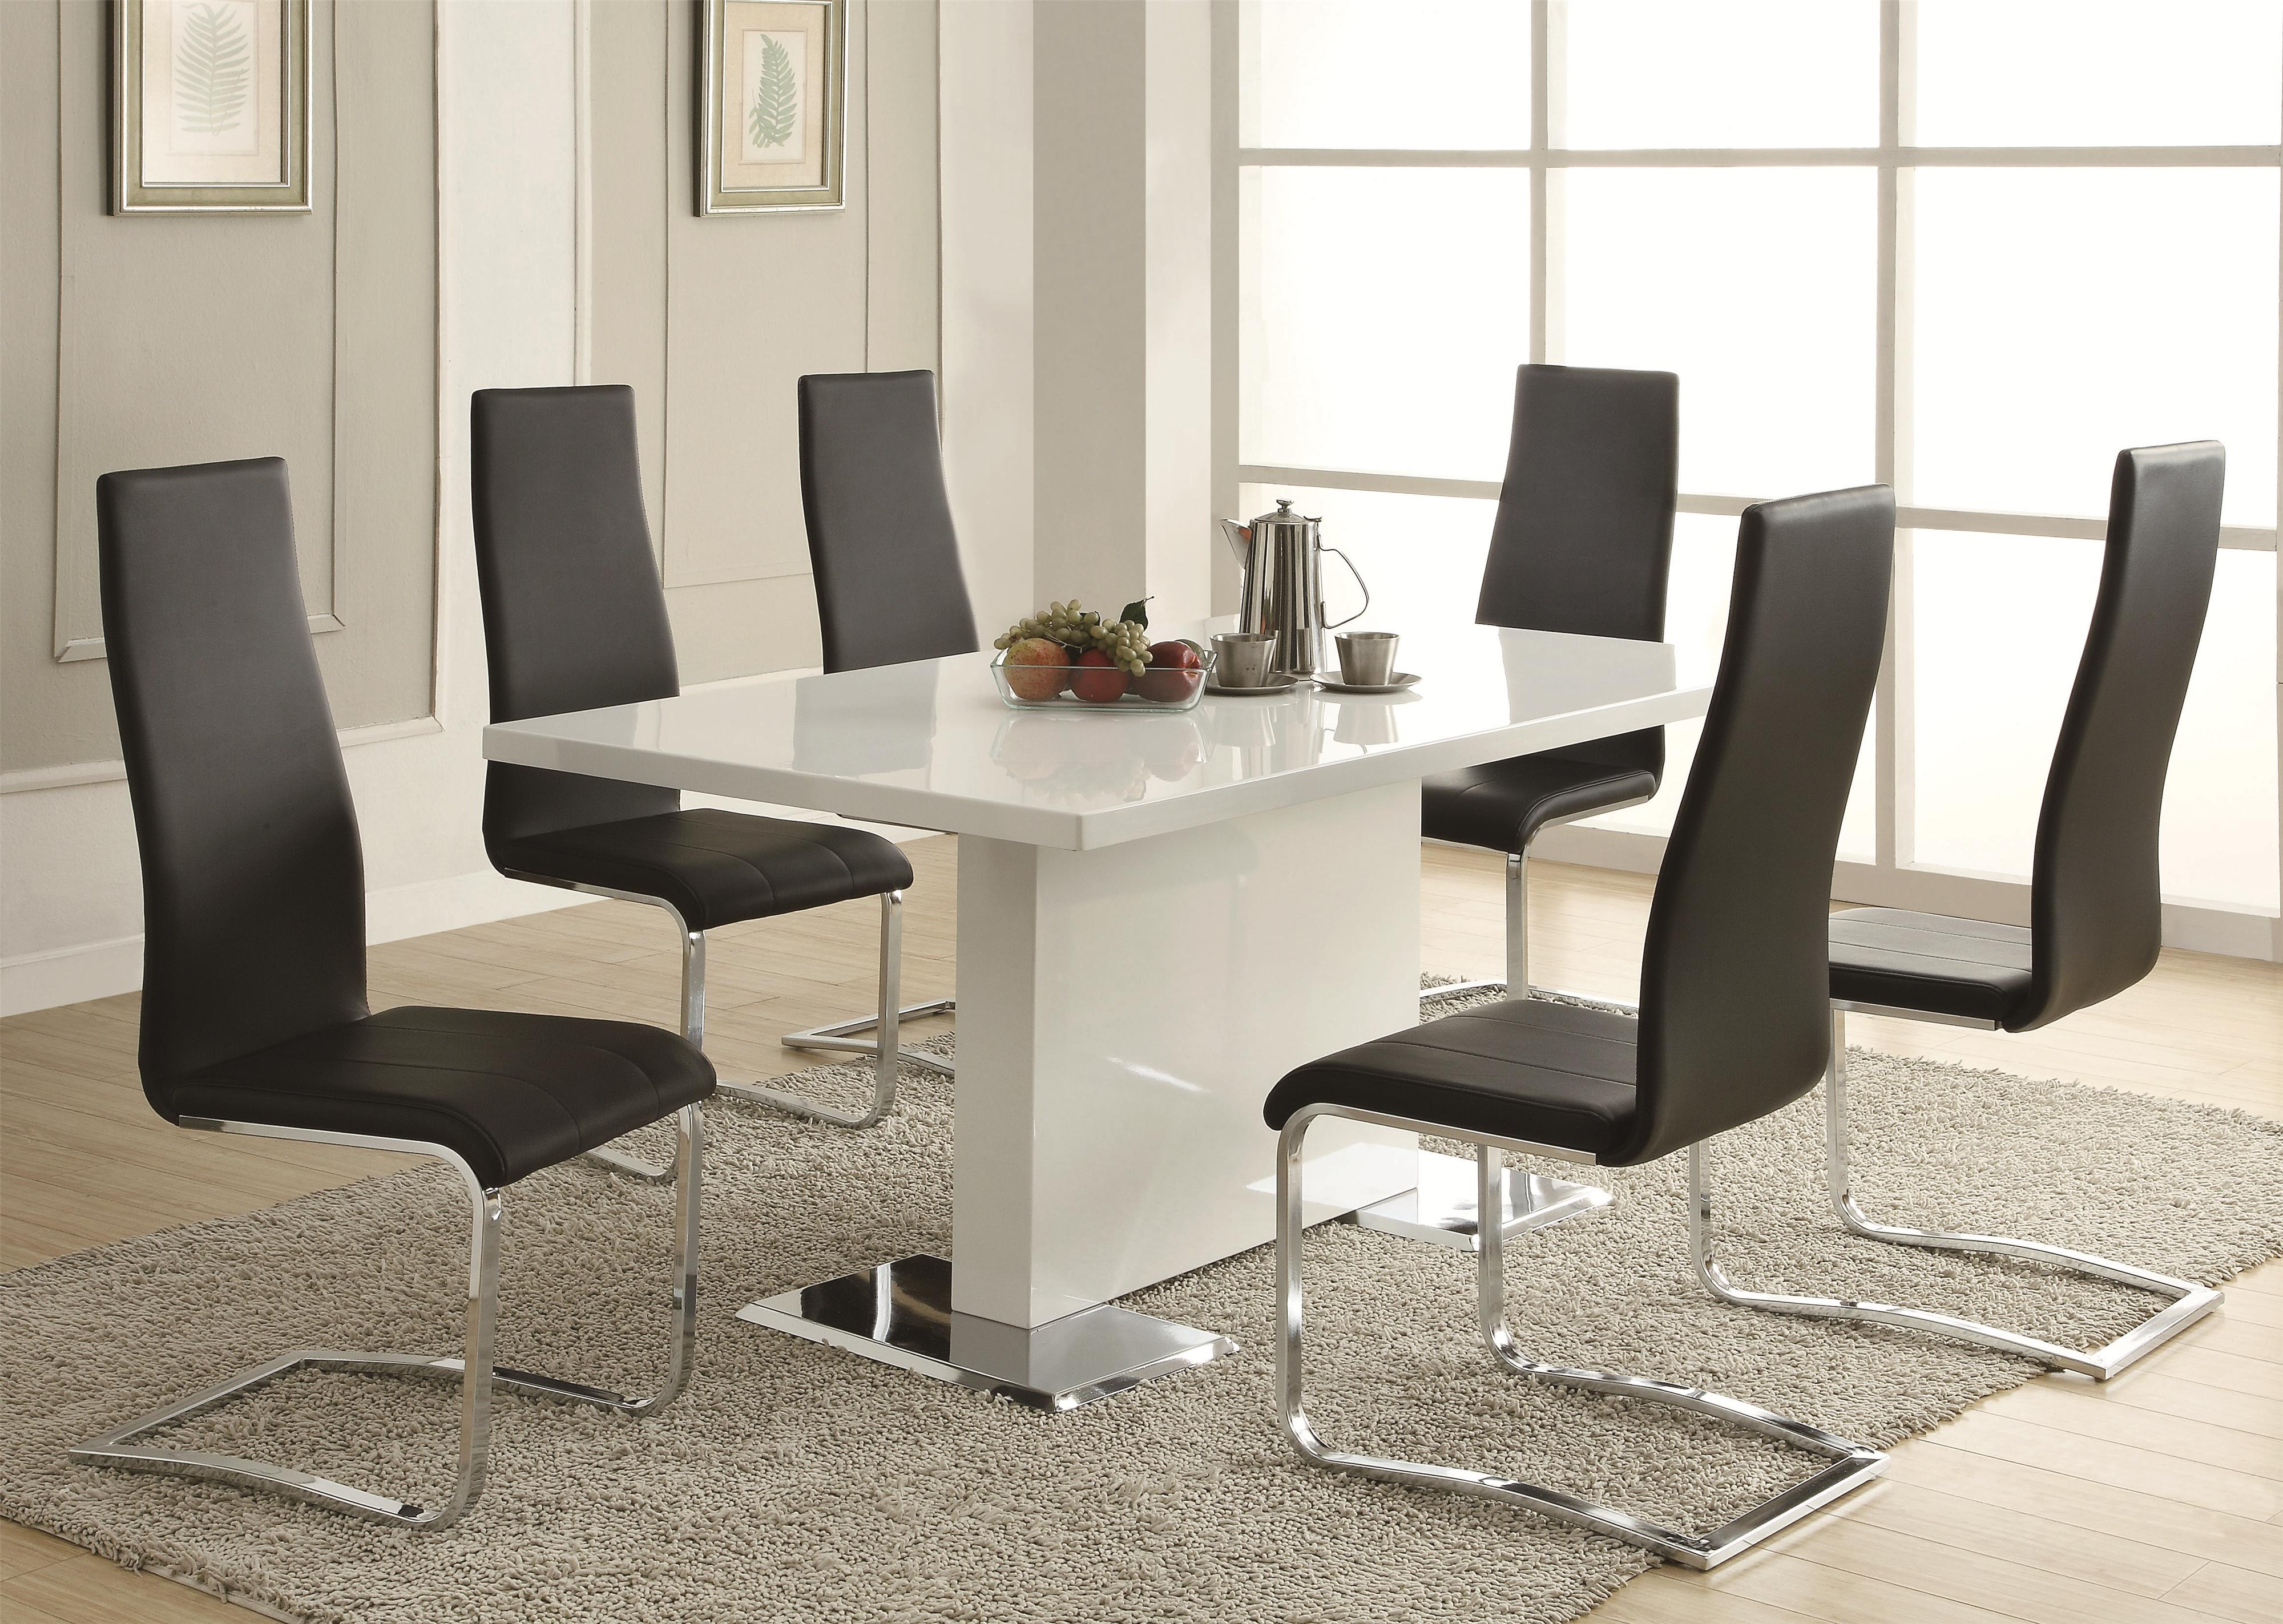 Coaster Modern Dining 7 Piece White Table u0026 White Upholstered Chairs Set - Coaster Fine Furniture & Coaster Modern Dining 7 Piece White Table u0026 White Upholstered Chairs ...